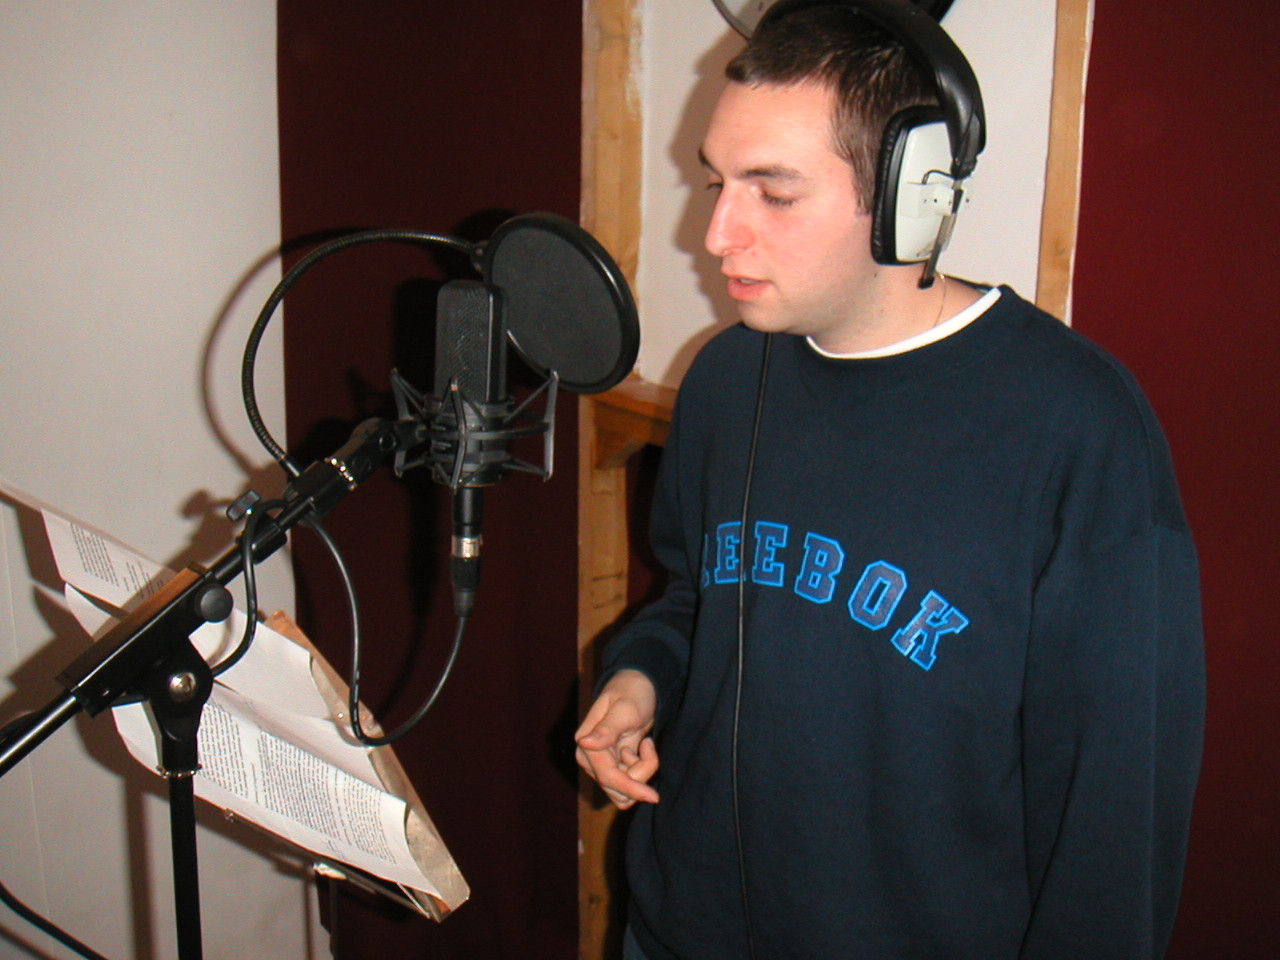 Antithesis the Zionist Rapper Recording Looking for Home